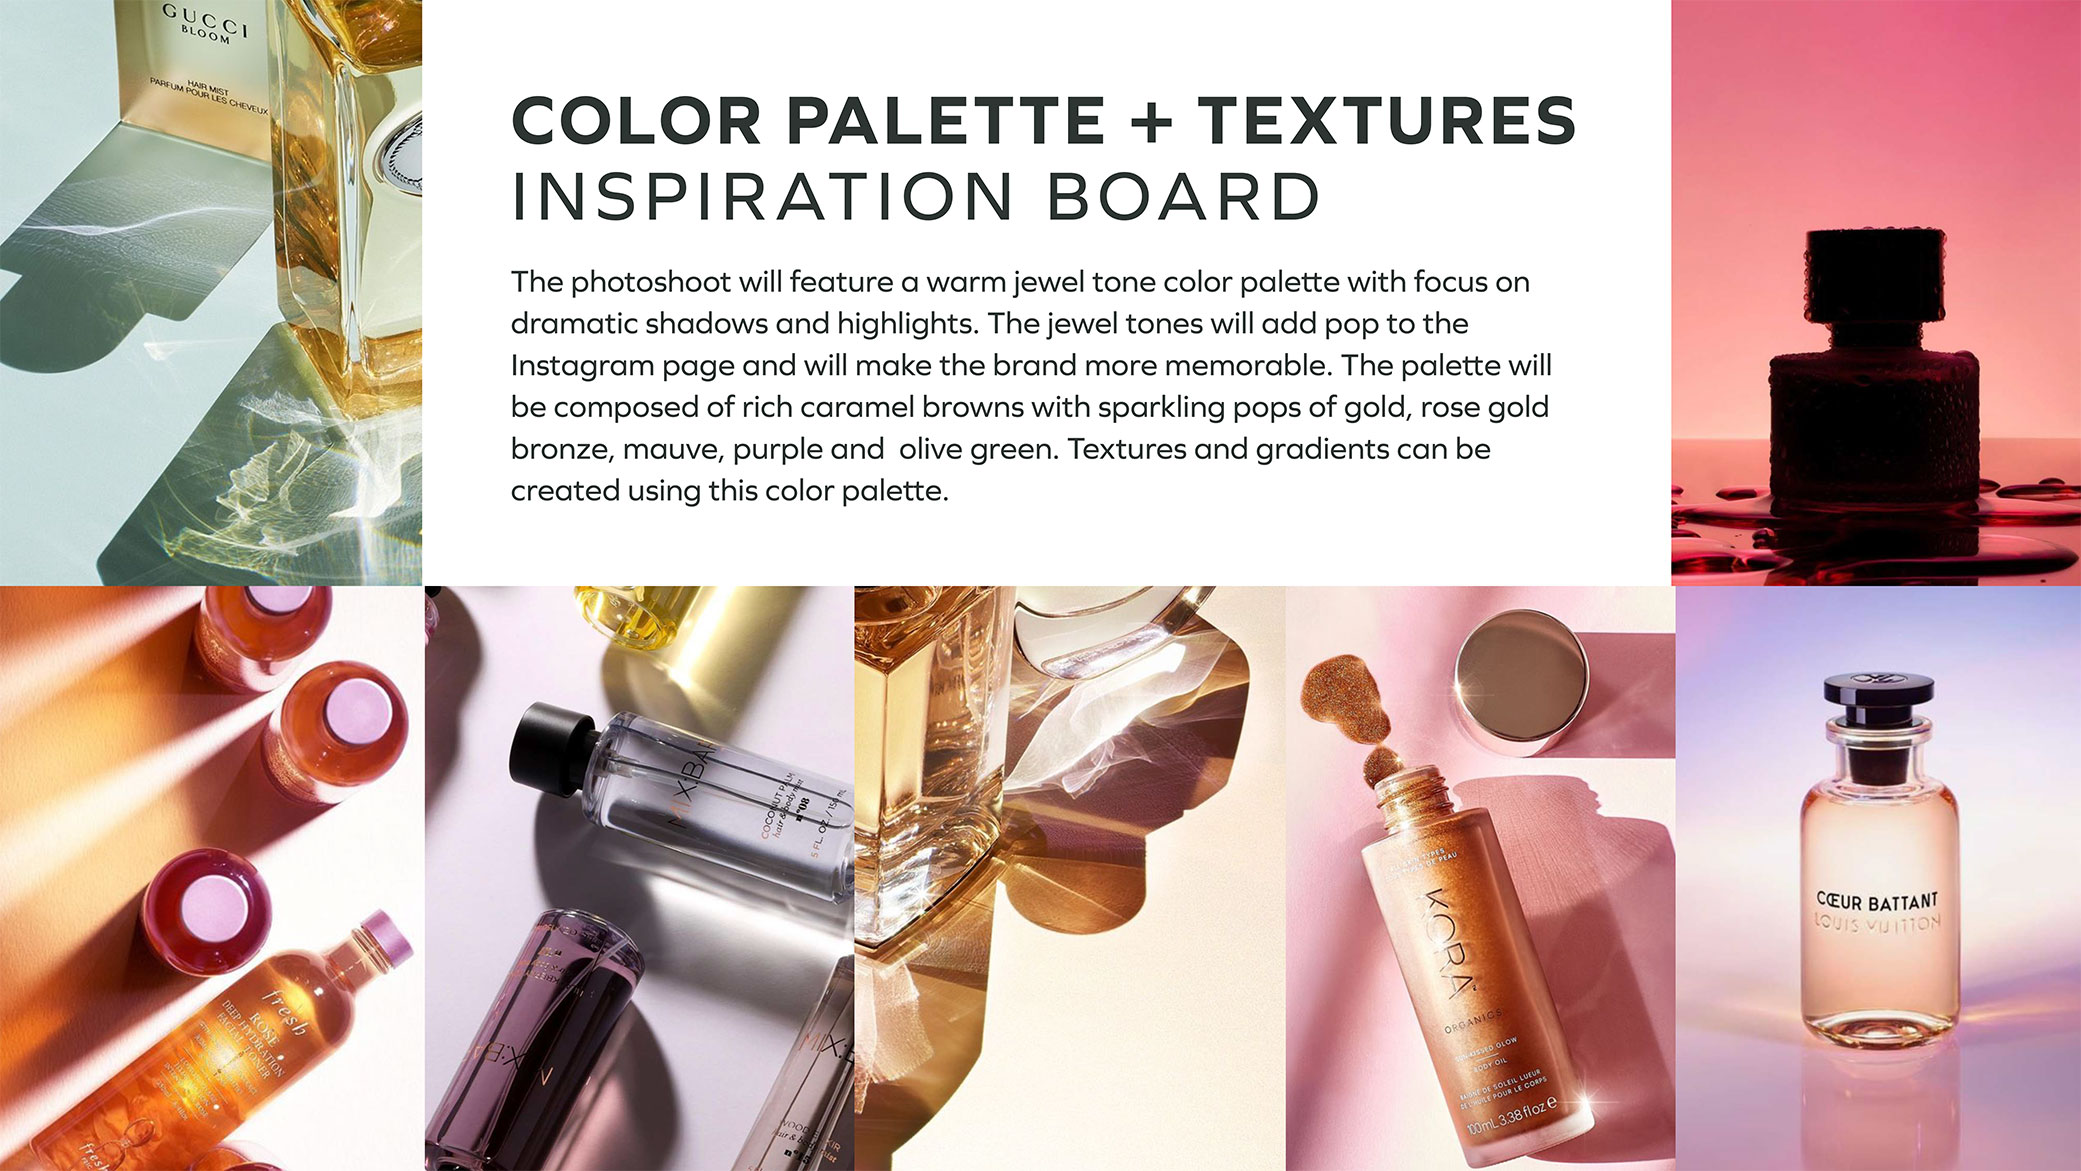 CTRL Cosmetics color palette and textures inspiration board showcasing different images with shadows and tones in gold and rose gold jewel tones.